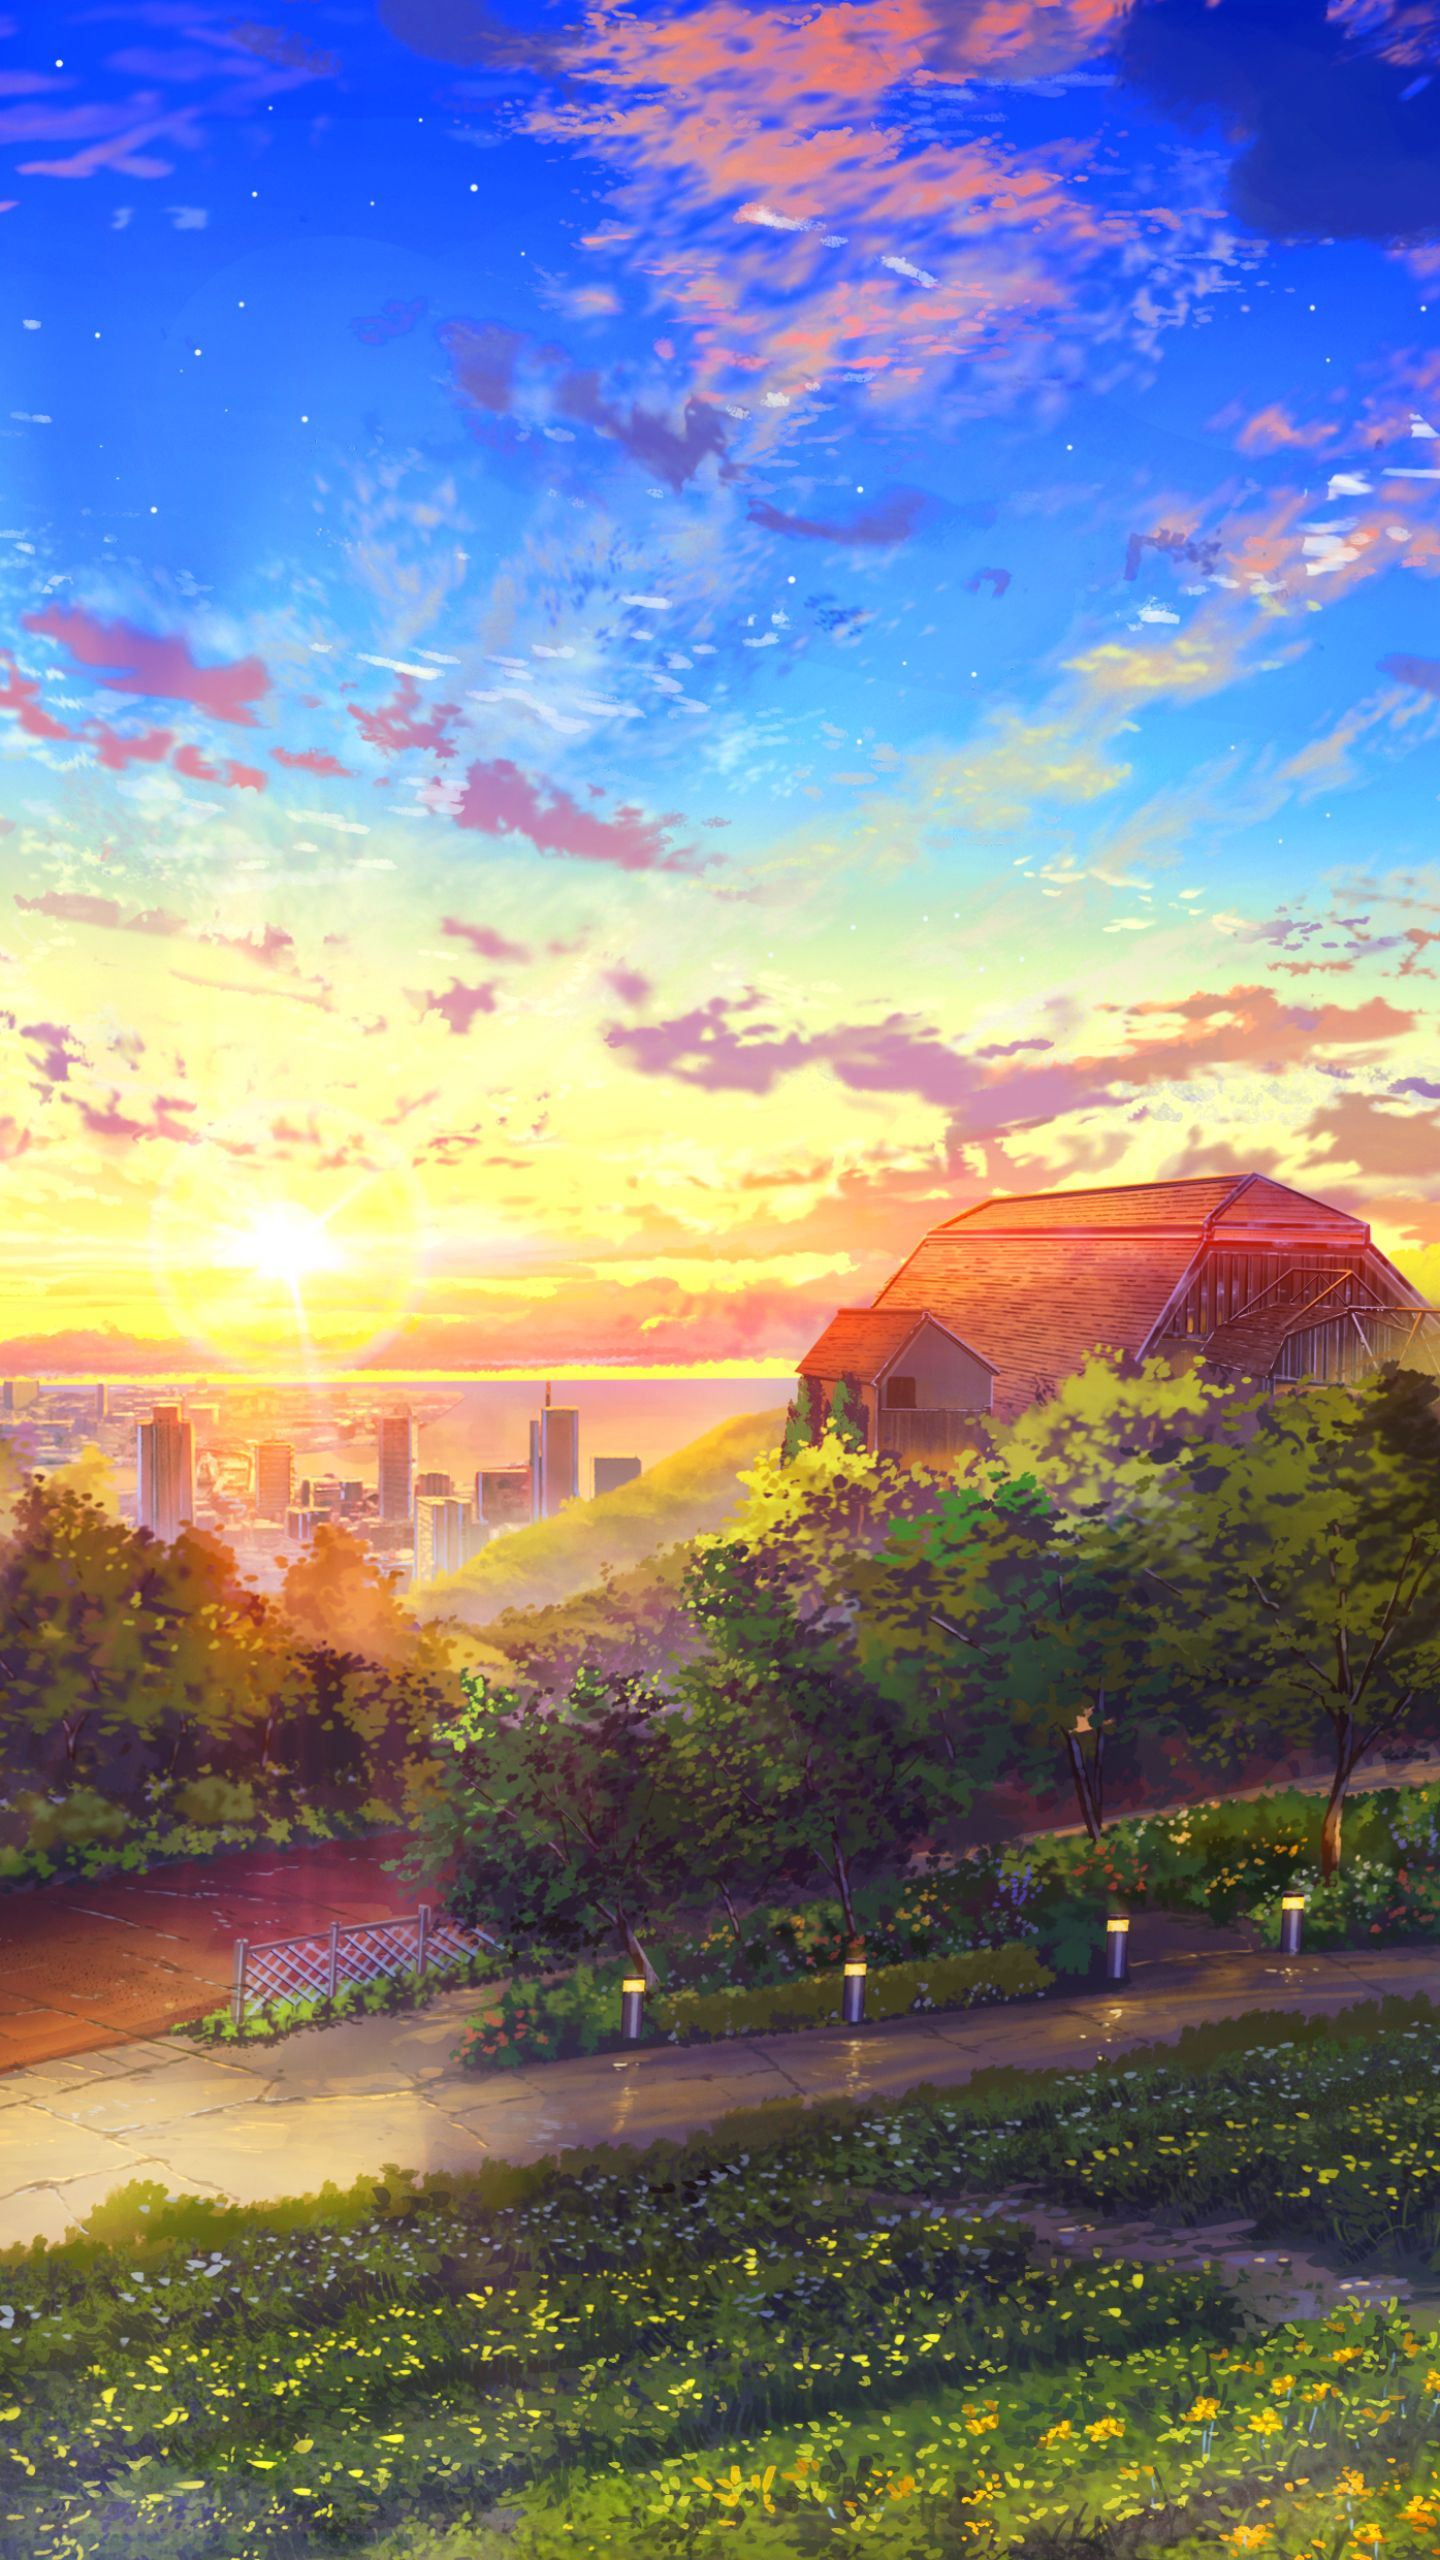 Anime Landscape Wallpaper Phone Anime Landscape 1440x2560 Wallpaper Id 793667 Mobile Abyss Anime Scener In 2020 Anime Scenery Scenery Wallpaper Anime Wallpaper Phone